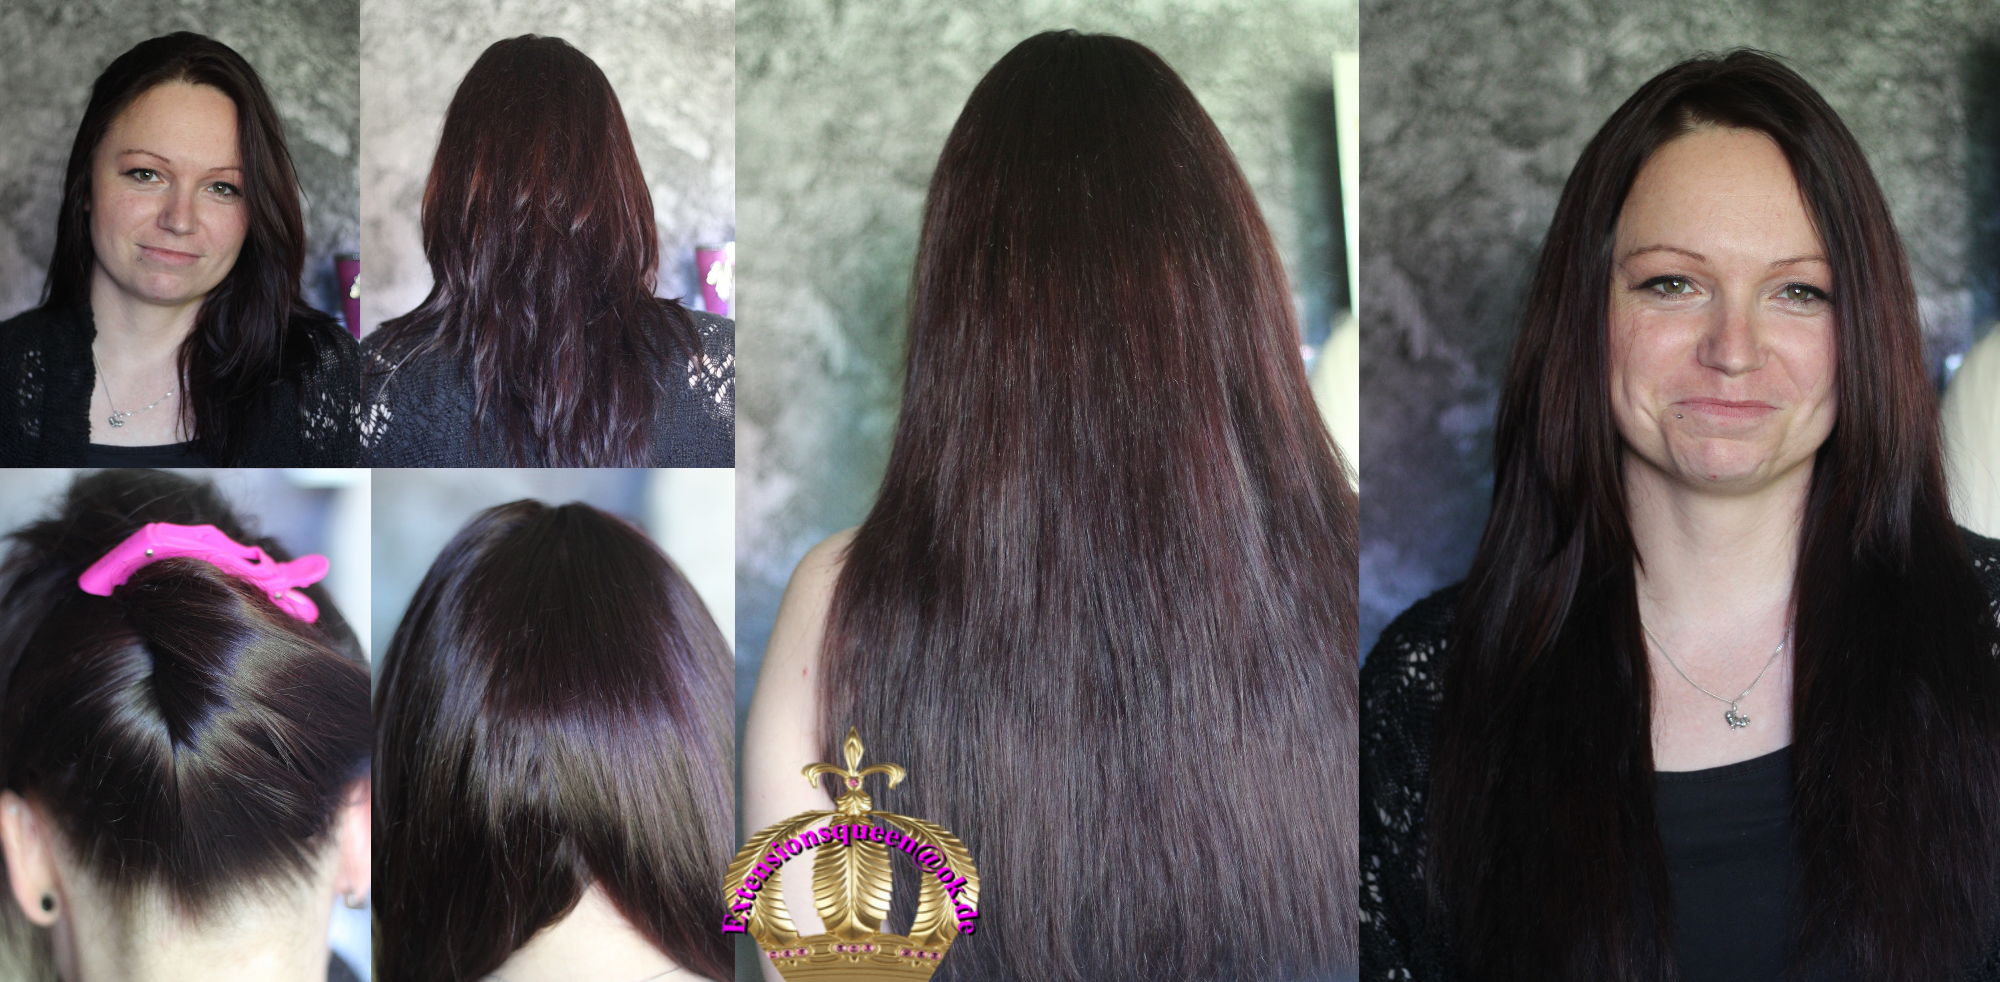 Extensionsqueen, Hairextension, Extensionsprofi, Wimpernextension, Haarersatz, Haarintegration, Haarverlängerung, Haarverdichtung, mit Bondings, Microringe, Tressen, Haarnetze, Haarteile; Makeup, Styling, Pritzwalk